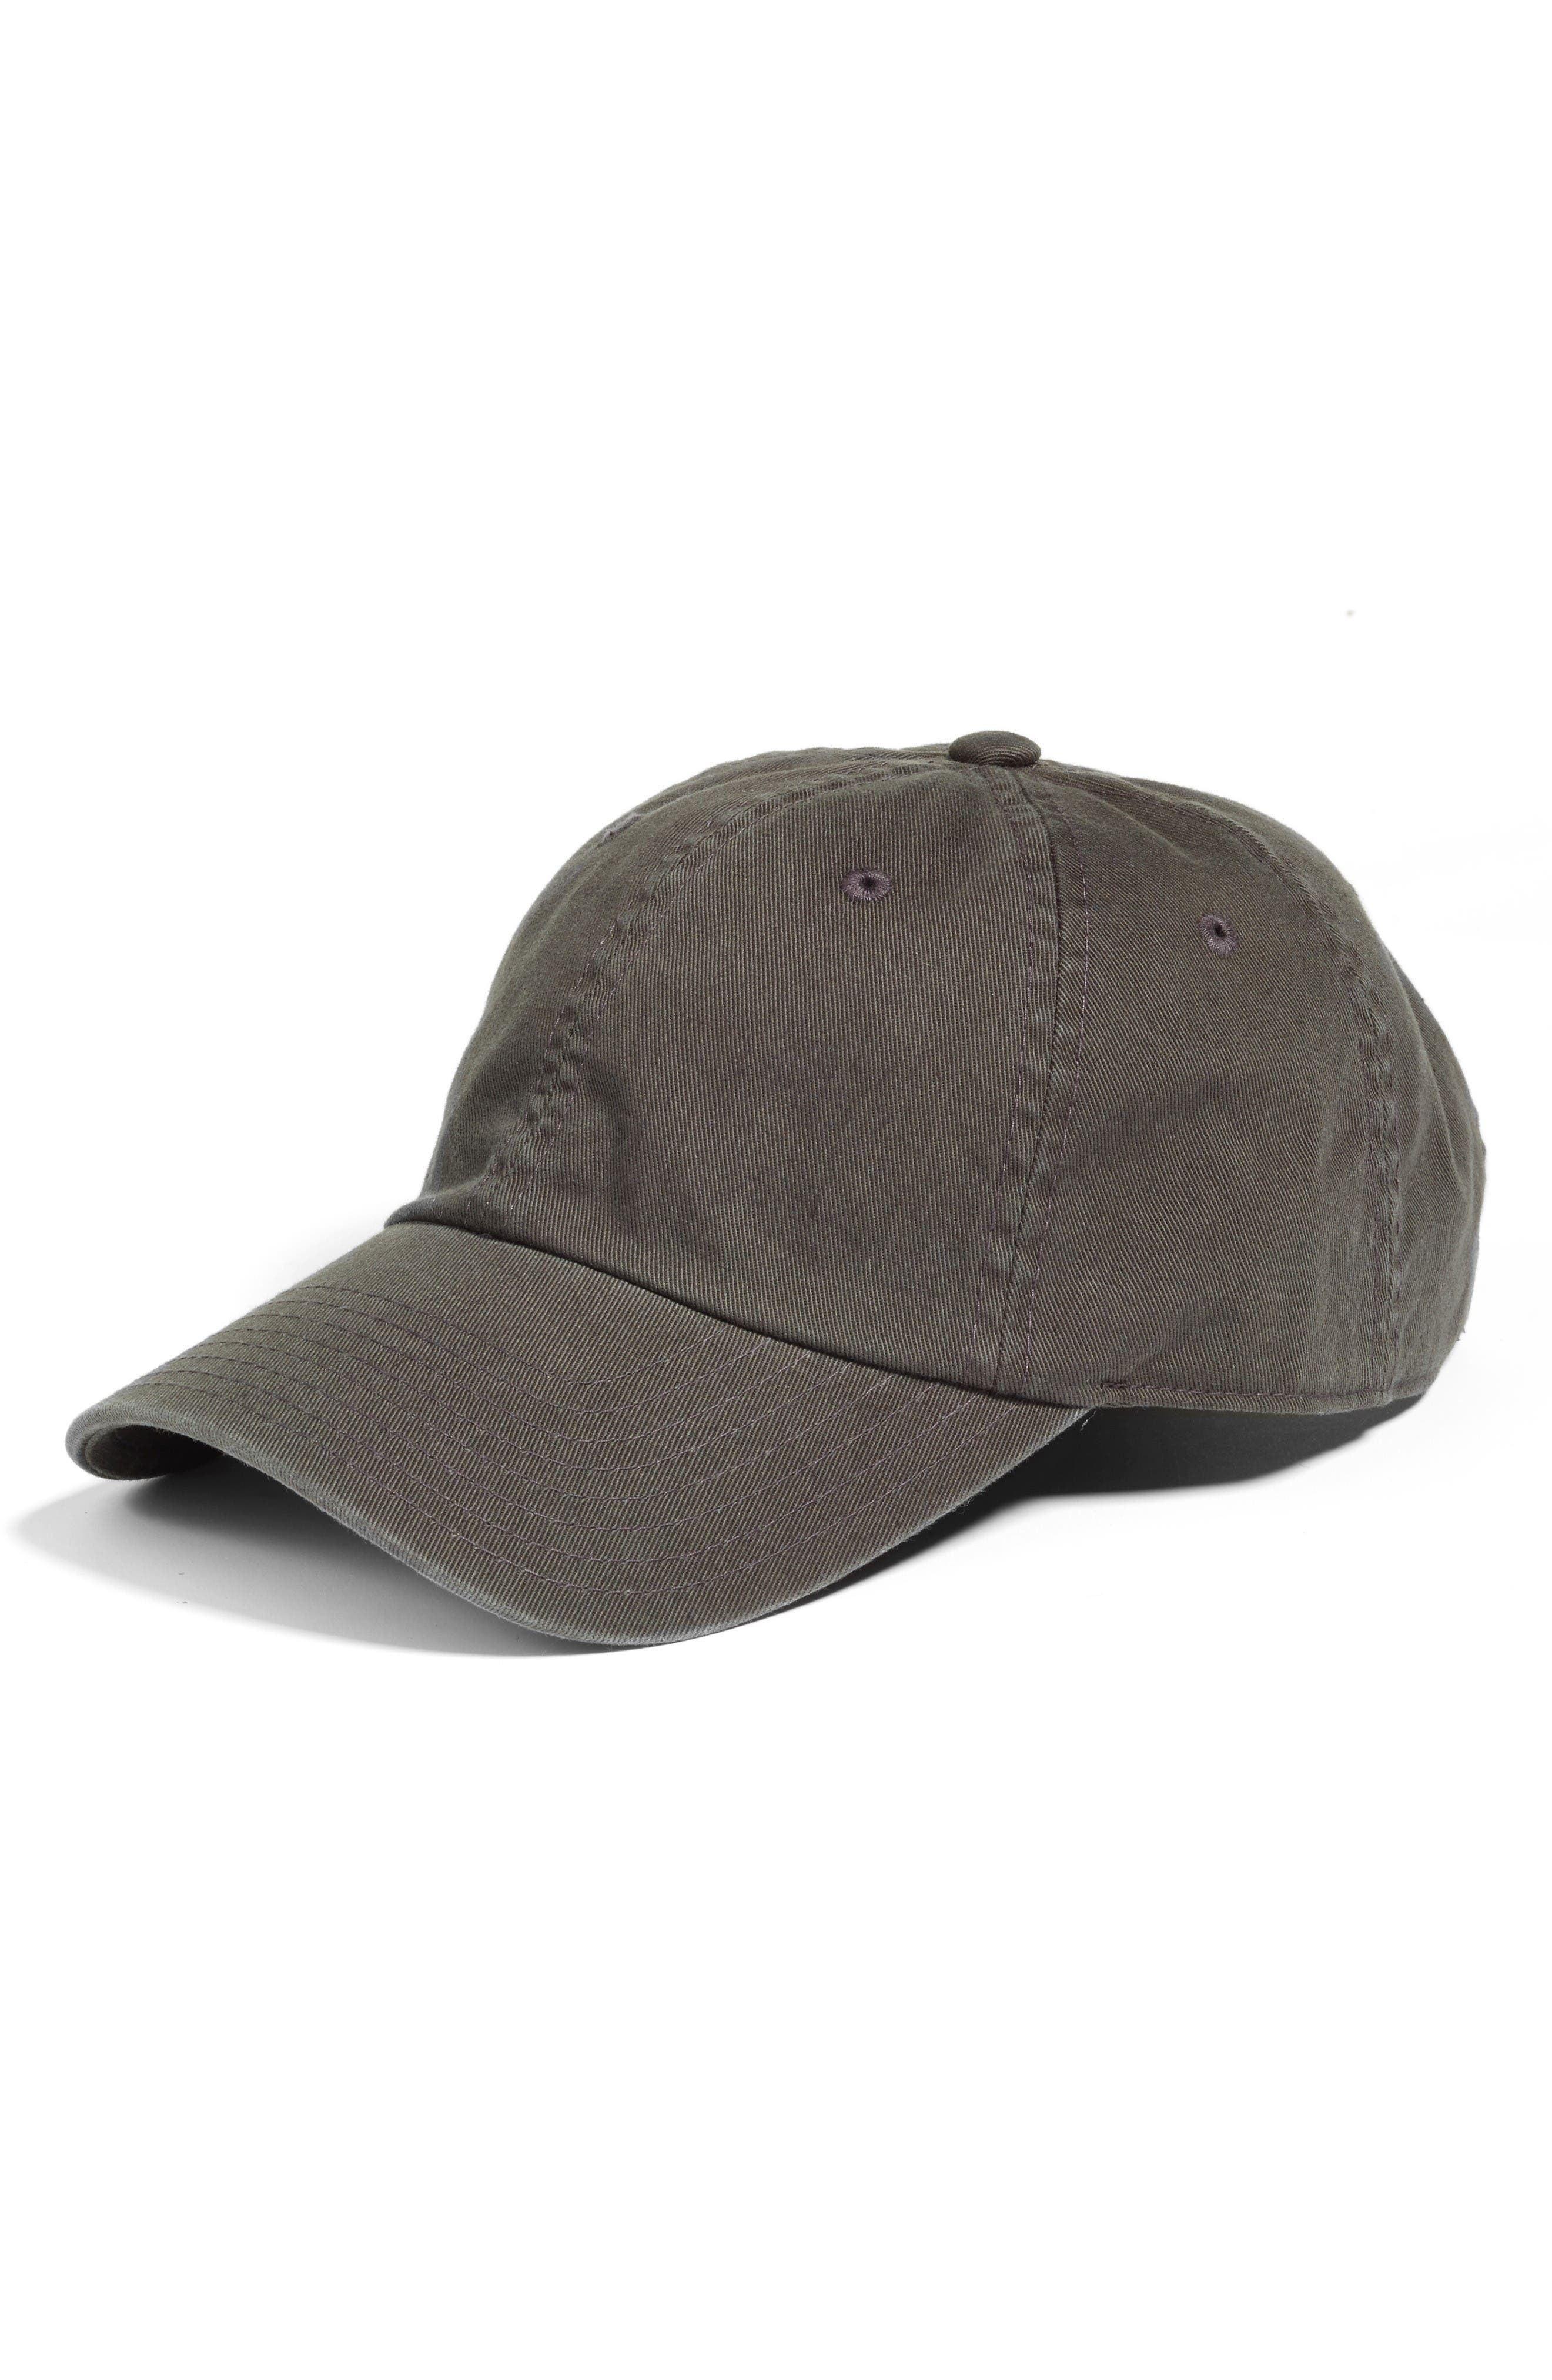 Alternate Image 1 Selected - American Needle Washed Cotton Baseball Cap